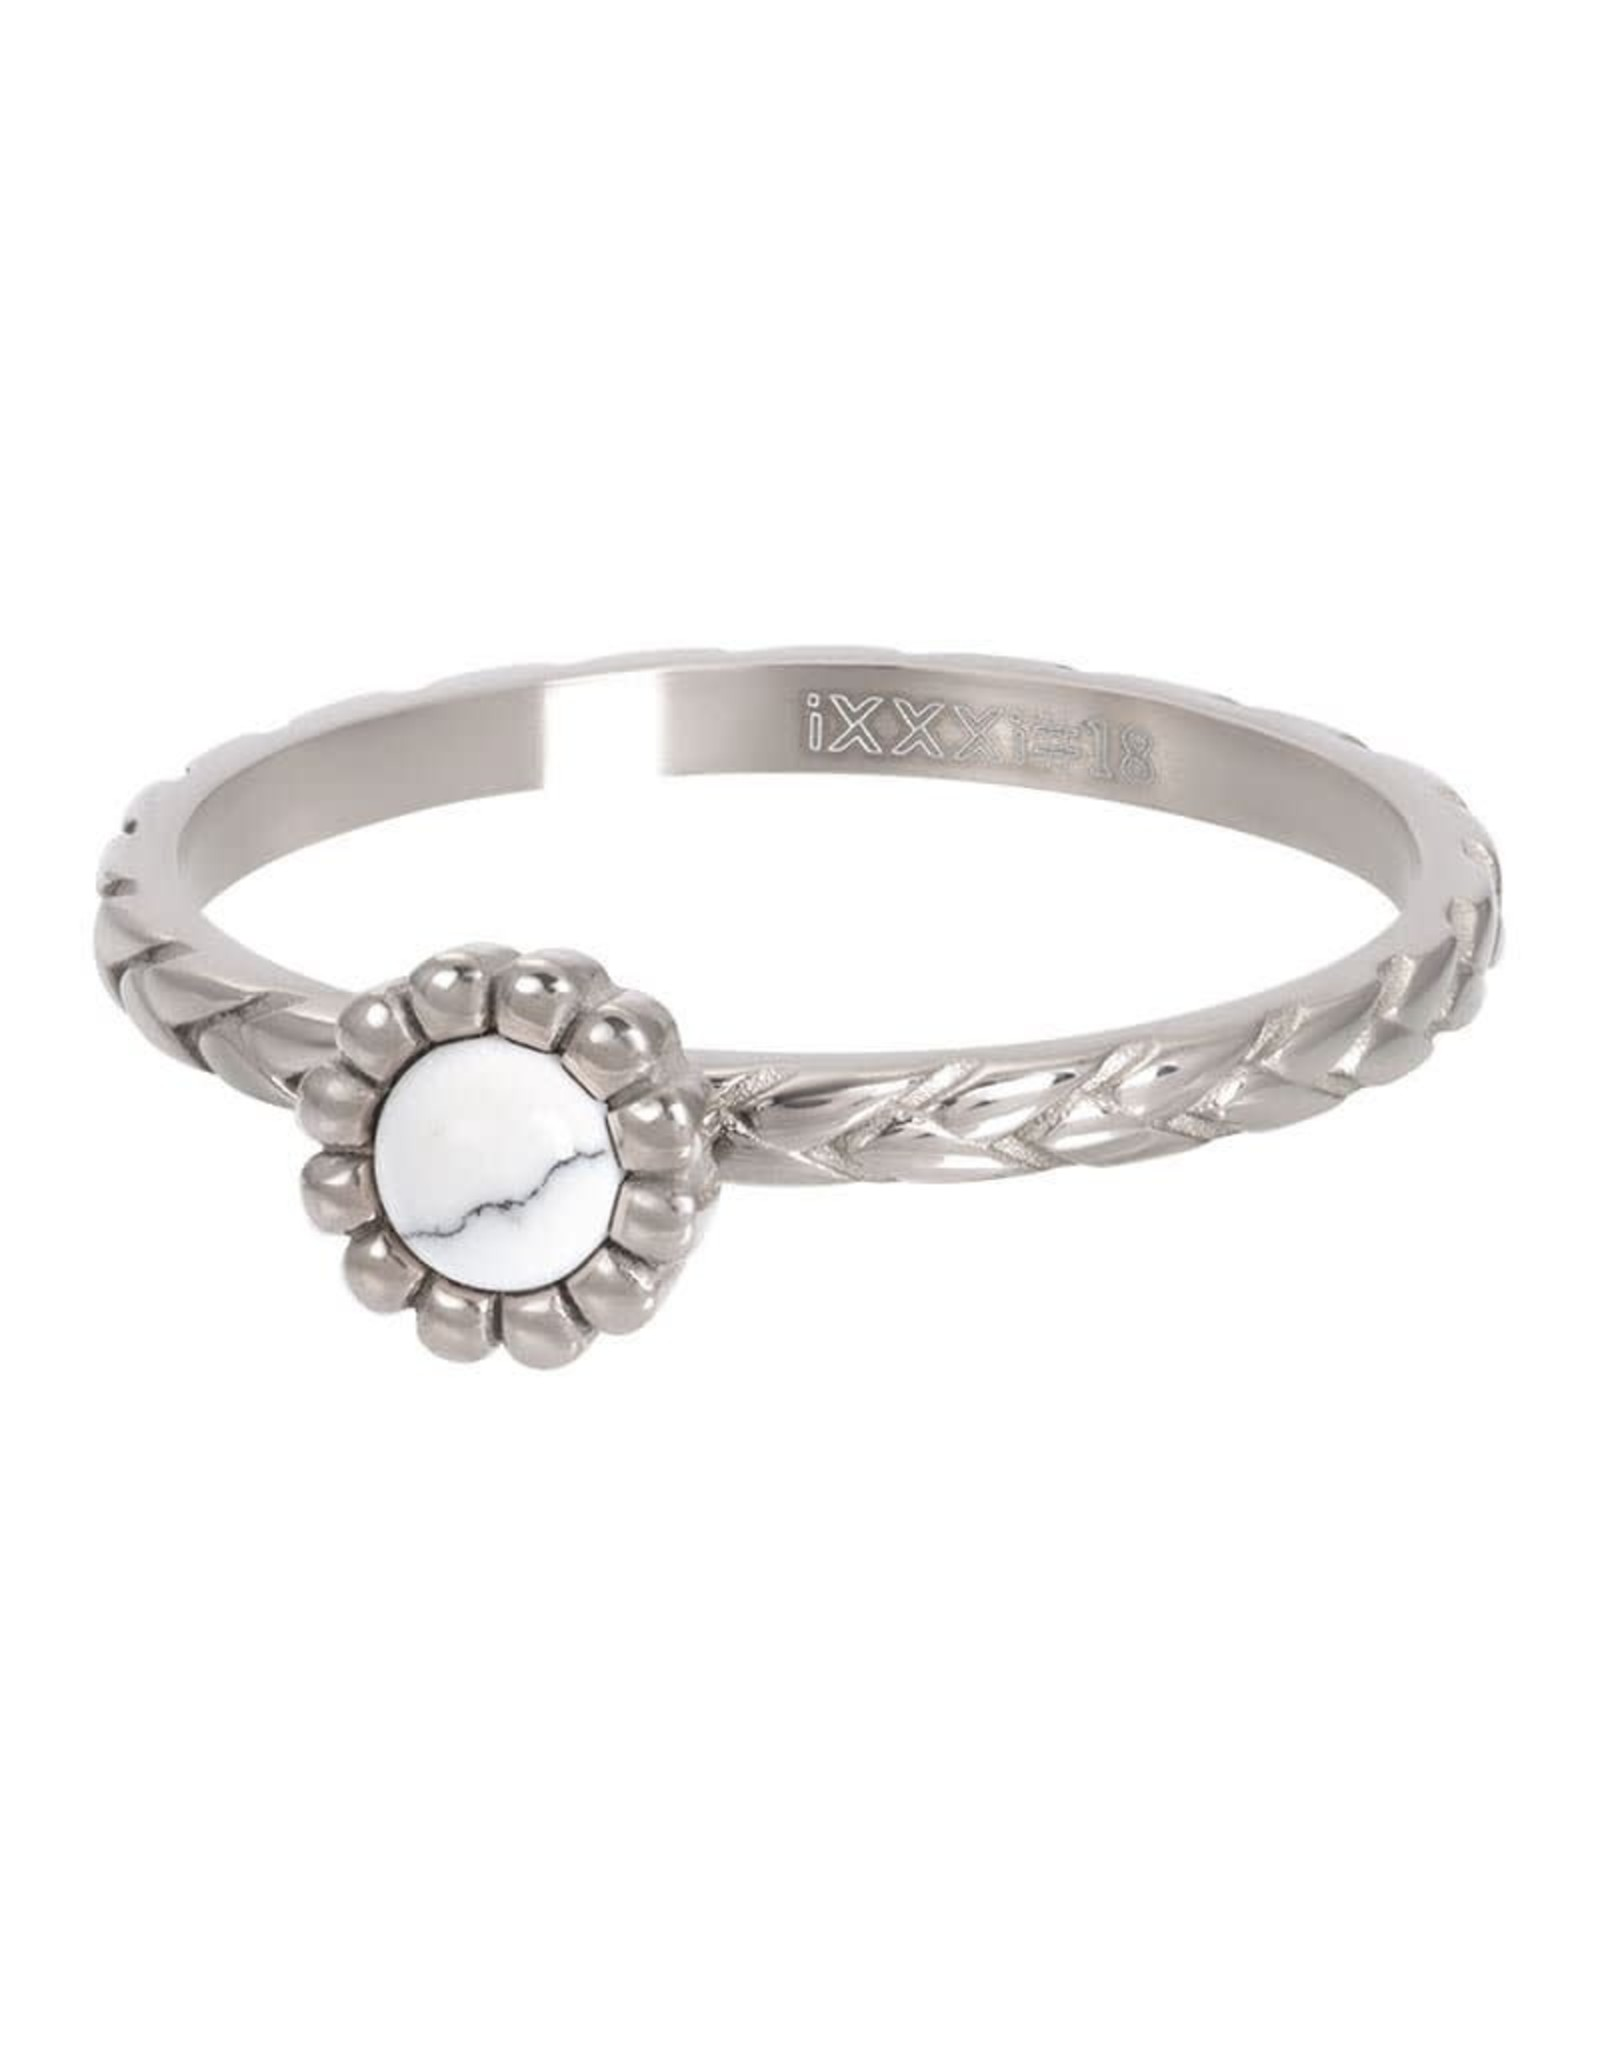 iXXXi Jewelry iXXXi vulring inspired white - staal